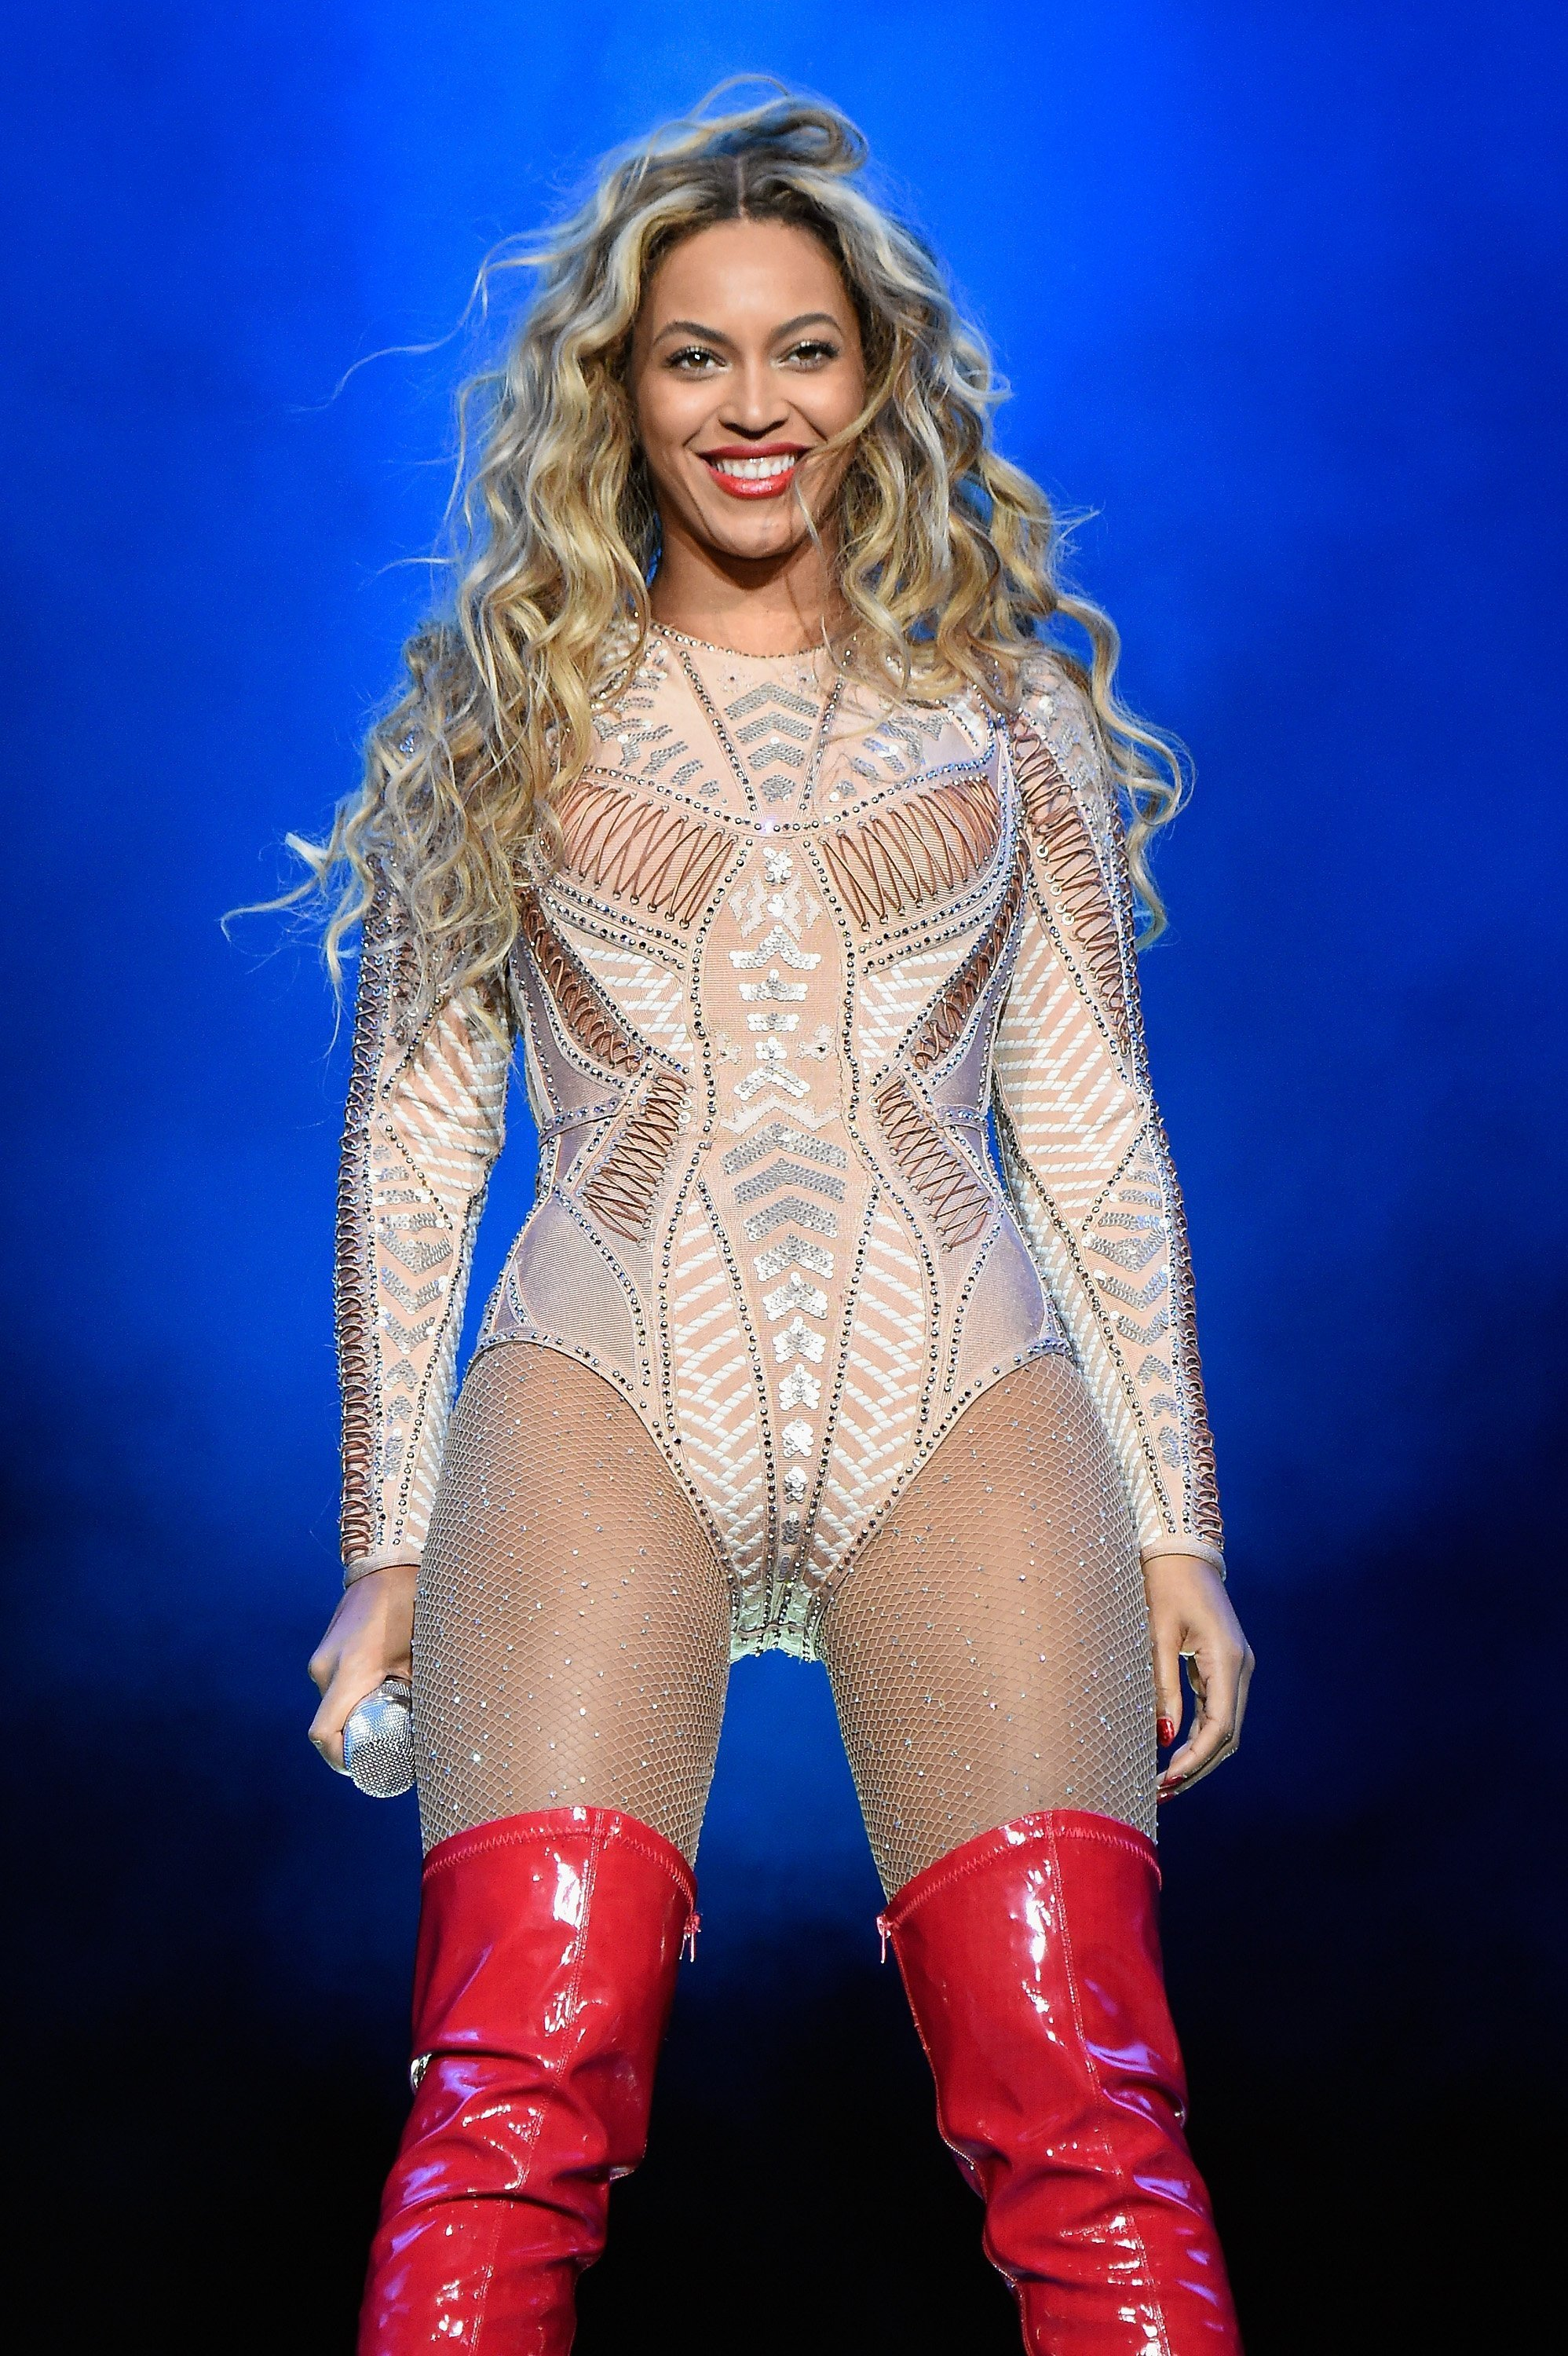 Beyonce performs onstage during the Made in America Festival on Sept. 5, 2015 in Philadelphia, Pennsylvania | Photo: Getty Images